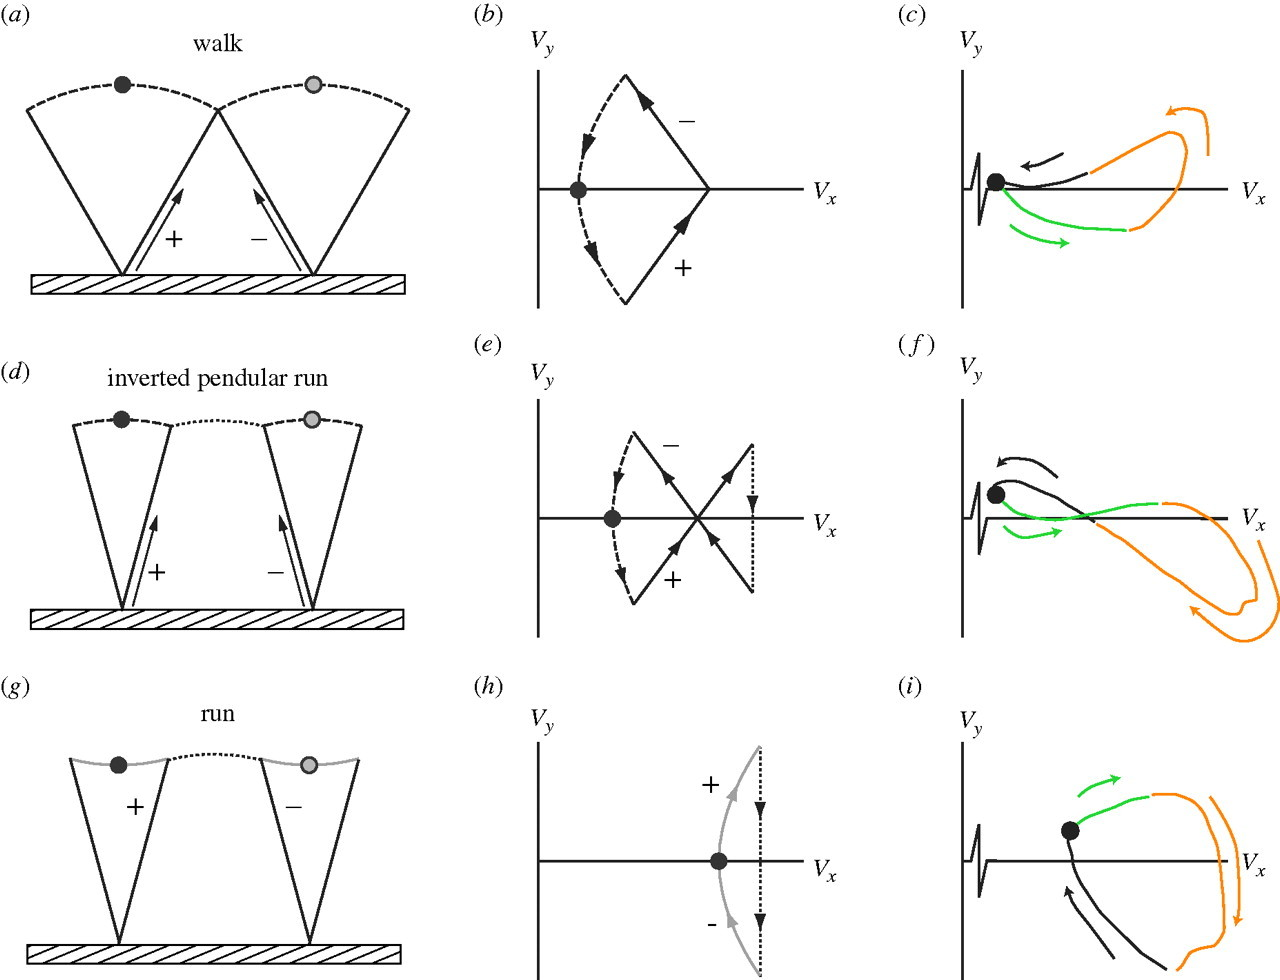 Inverted pendular running: a novel gait predicted by